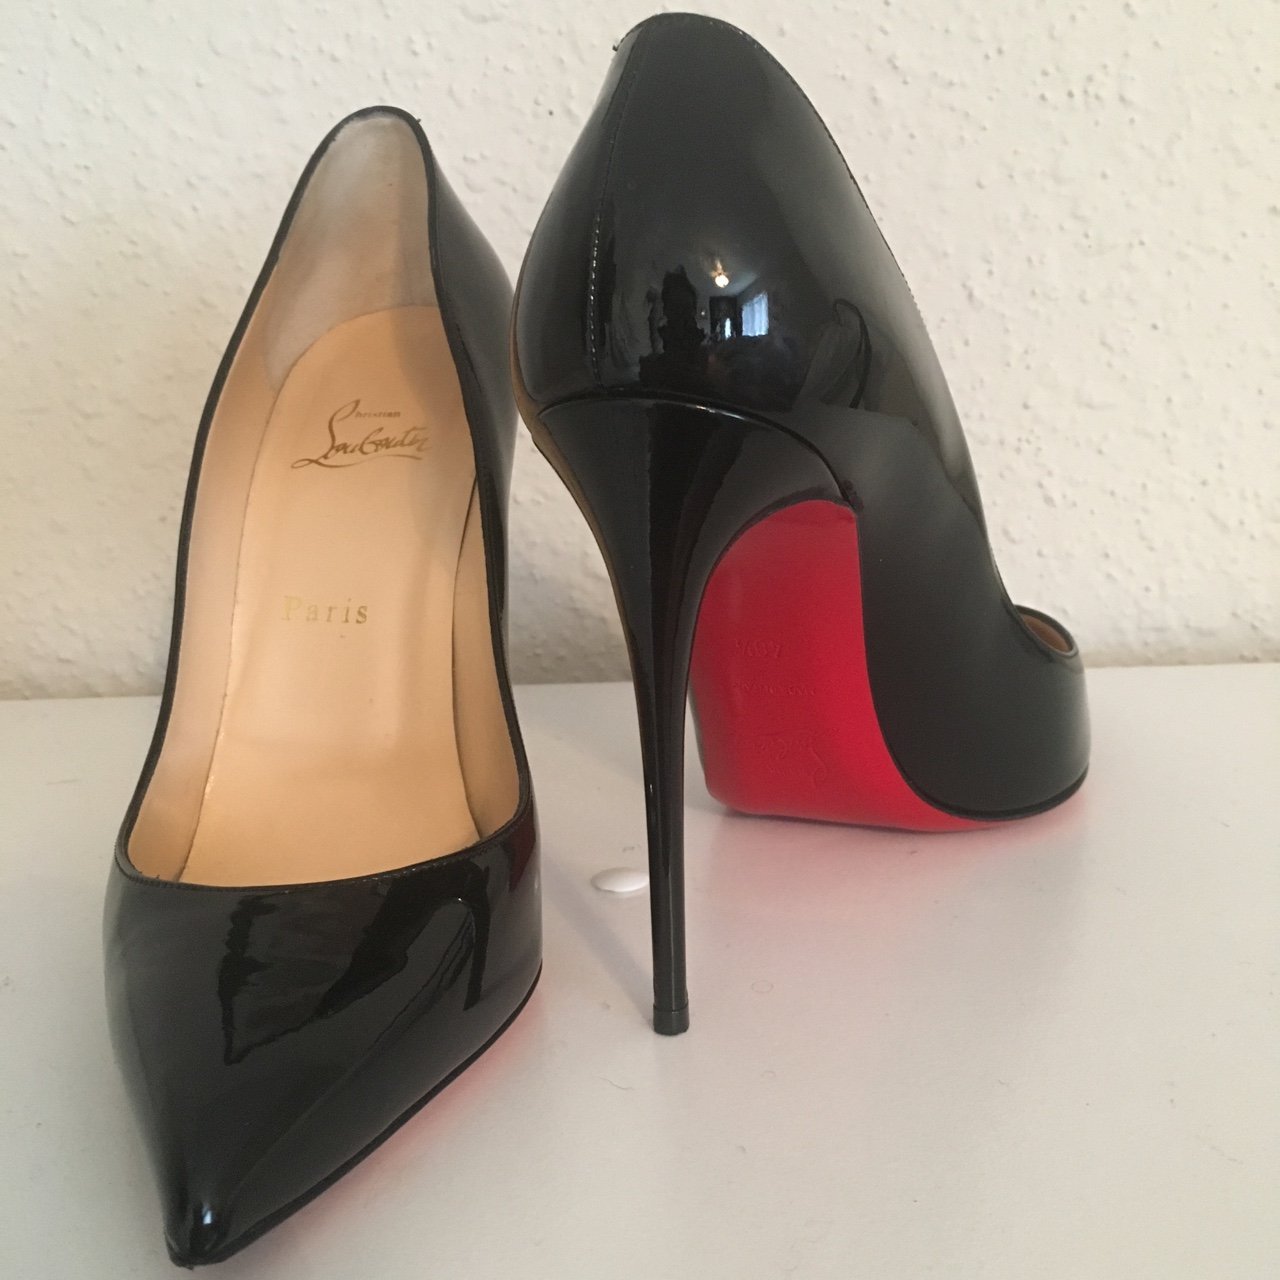 09975d97f katcordless. Houston, United States. Christian Louboutin pumps ...